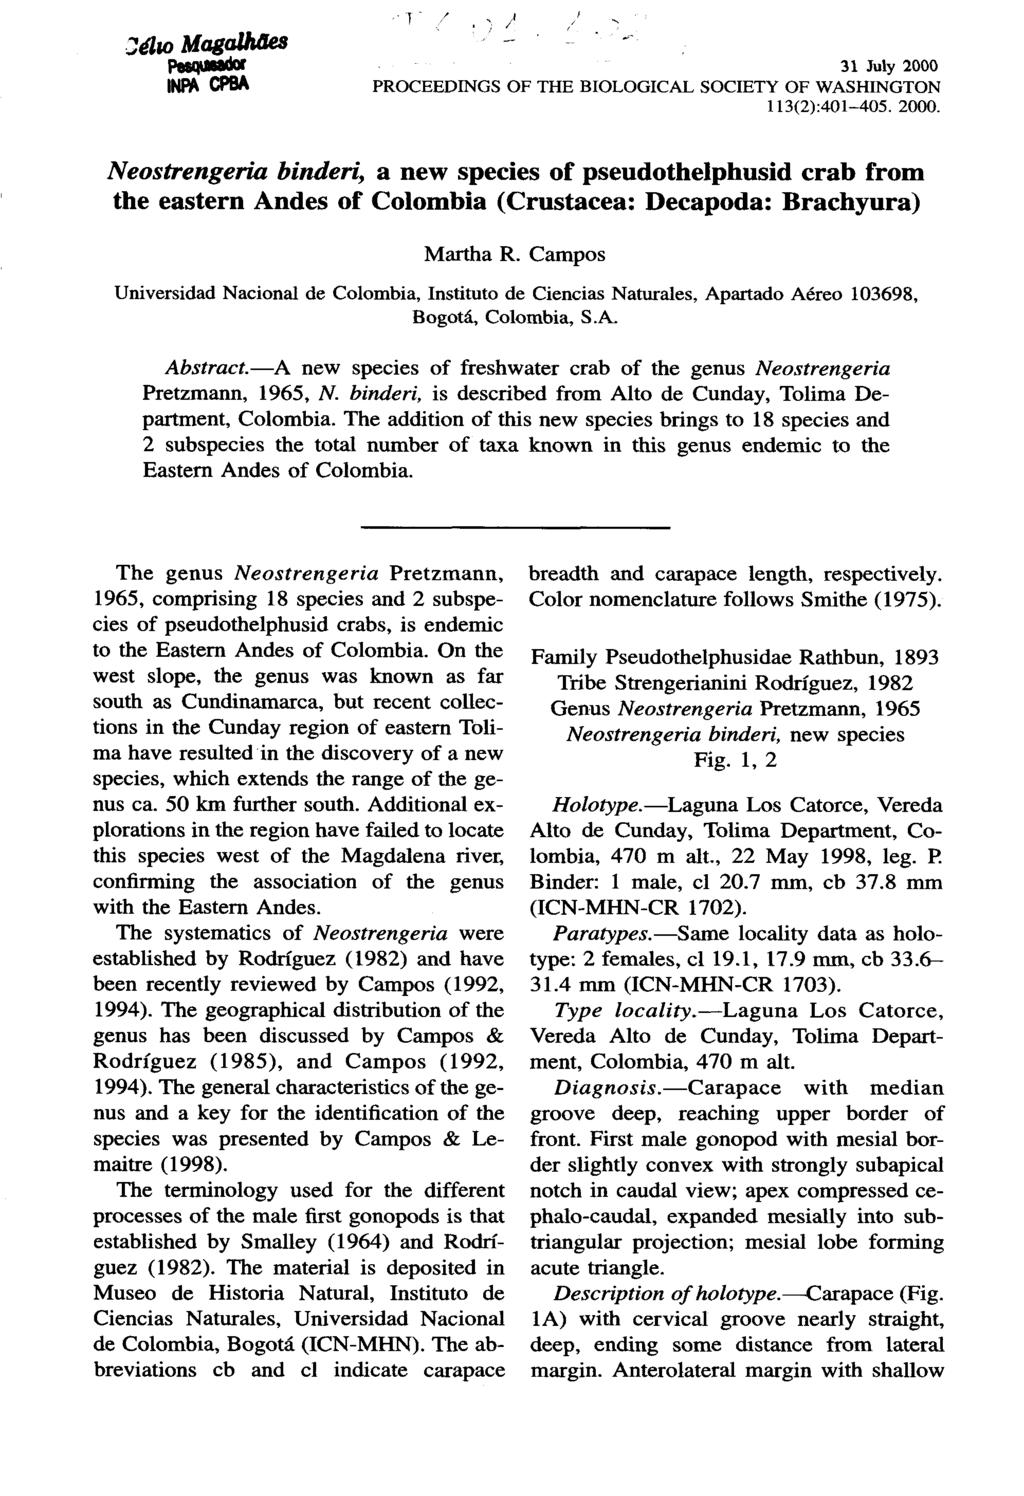 DdwMagalhOes ' ' - ' Pesqutador 31 July 2000 Iffl* CPBA PROCEEDINGS OF THE BIOLOGICAL SOCIETY OF WASHINGTON 113(2):401-405. 2000. Neostrengeria binderi, a new species of pseudothelphusid crab from the eastern Andes of Colombia (Crustacea: Decapoda: Brachyura) Martha R.